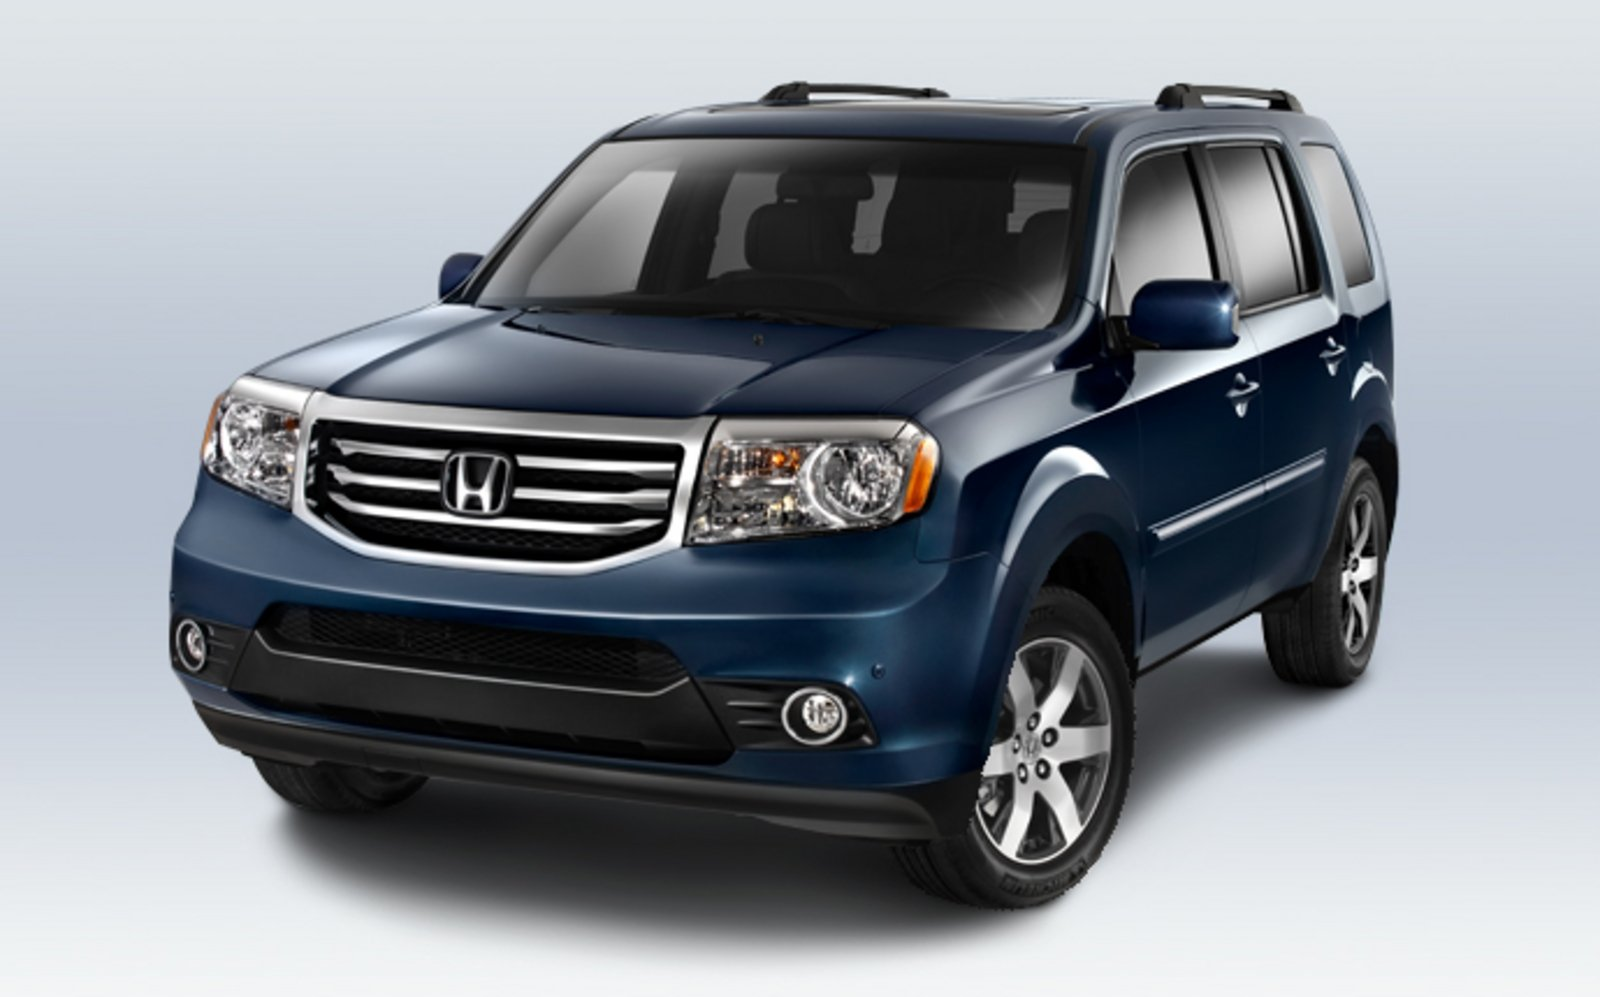 2012 Honda Pilot Review - Top Speed